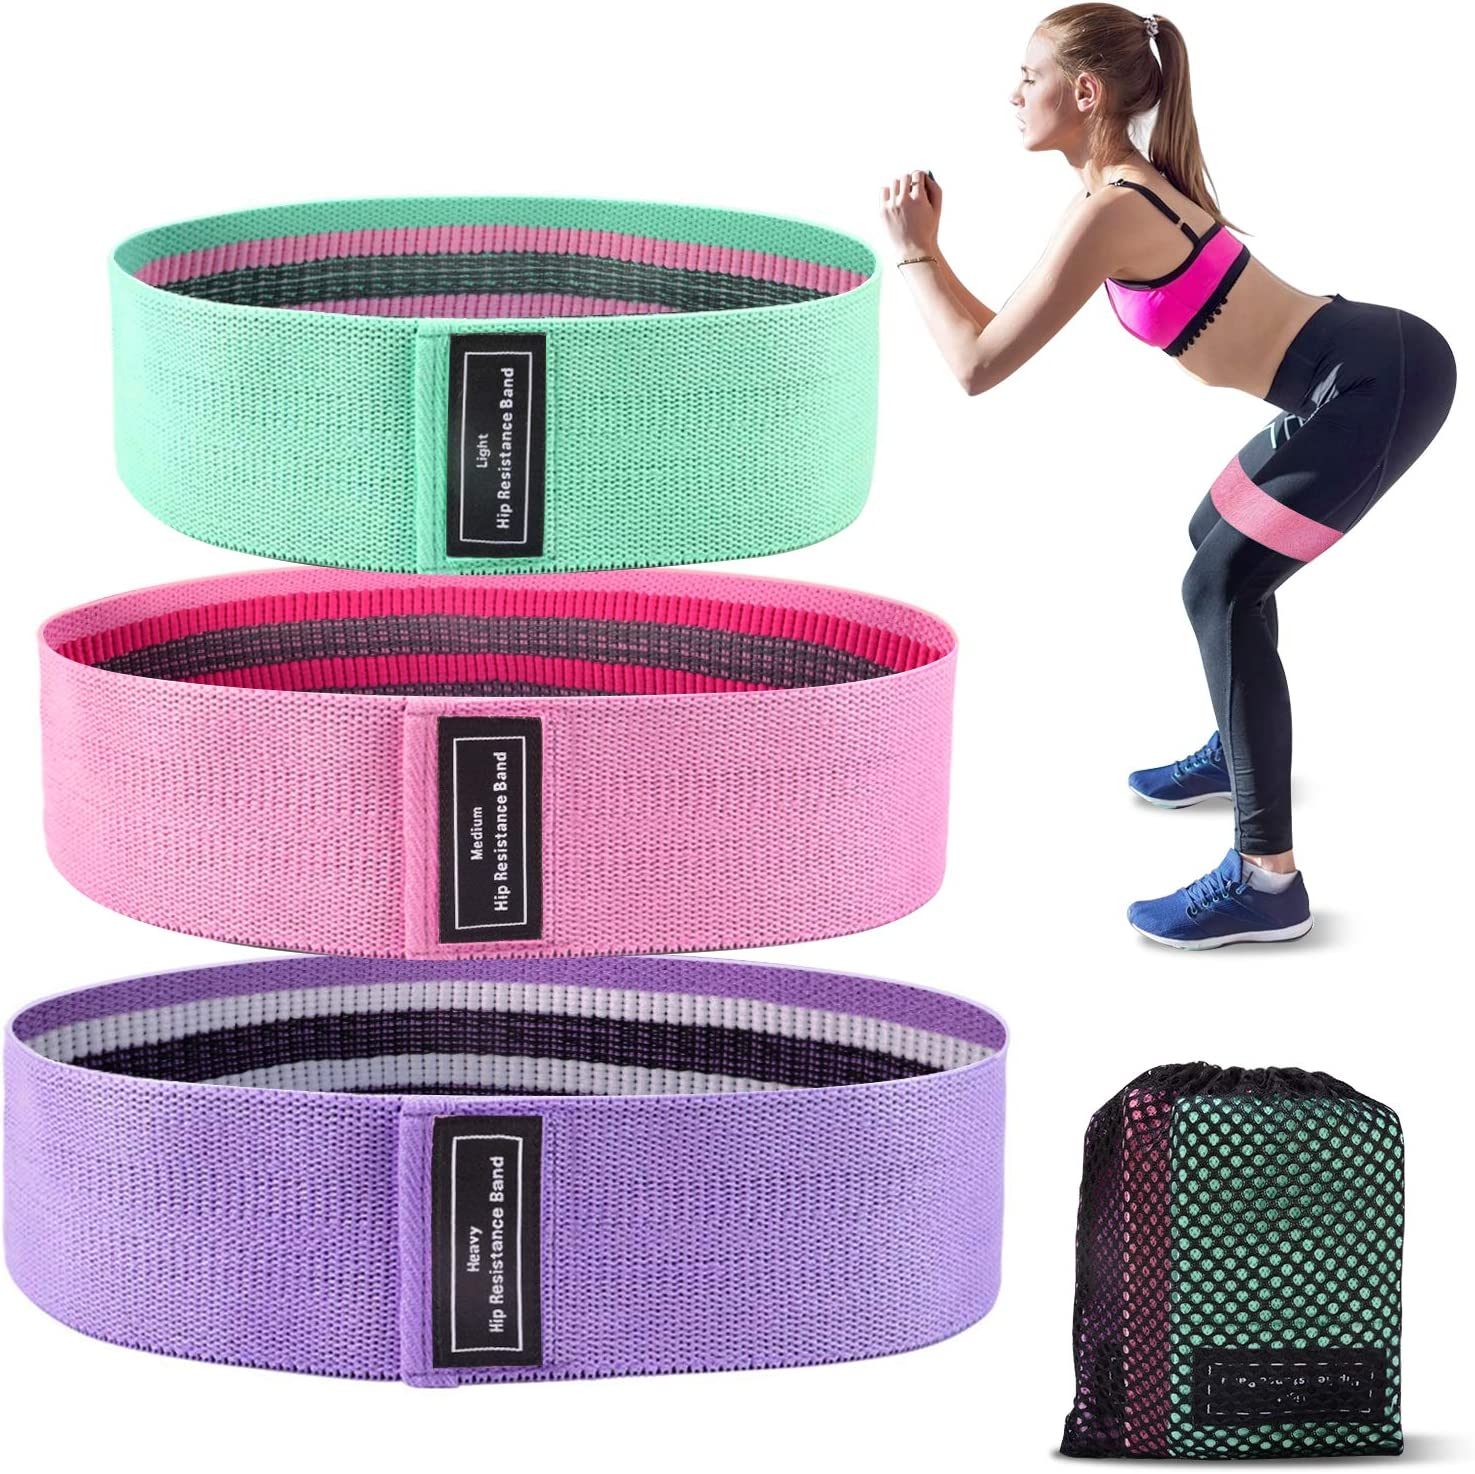 Maggie Resistance Bands Set for Women Butt and Legs Pilates Yoga Wide Anti Slip Fabric Glute Hip Bands Stretching Exercise Bands for Home Workout